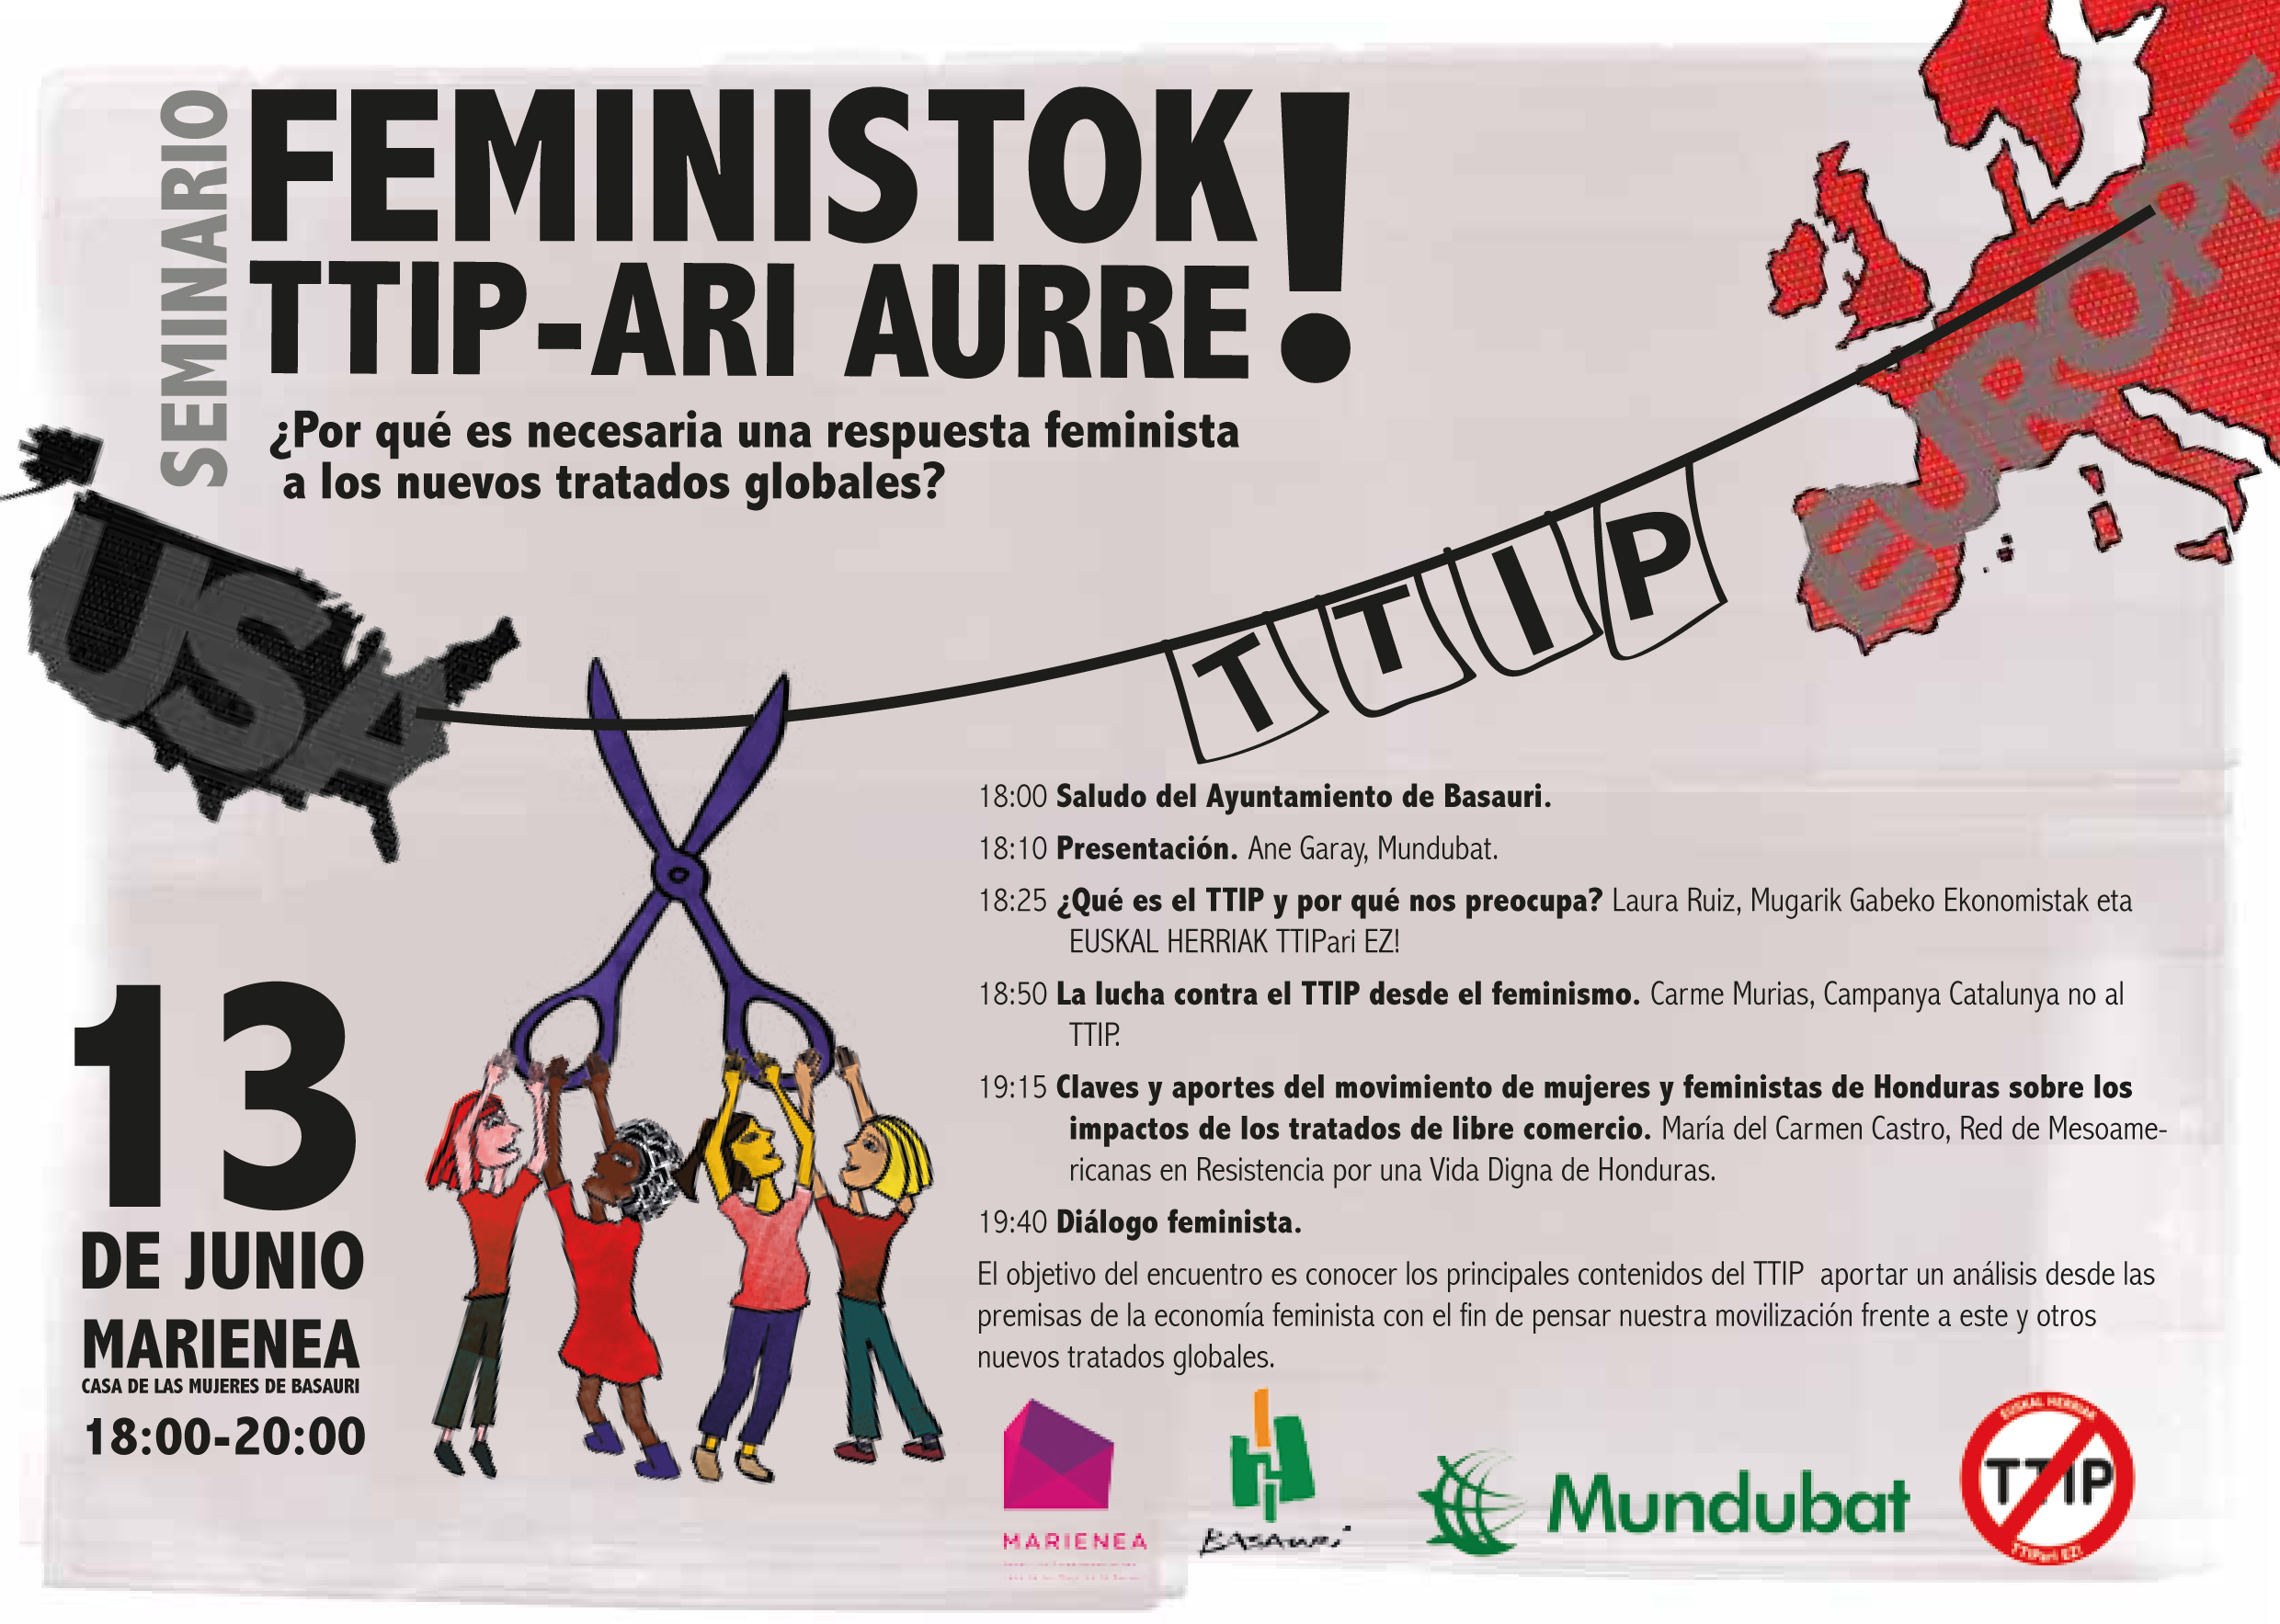 FEMINISTOK TTIP-ARI AURRE!flyer screen